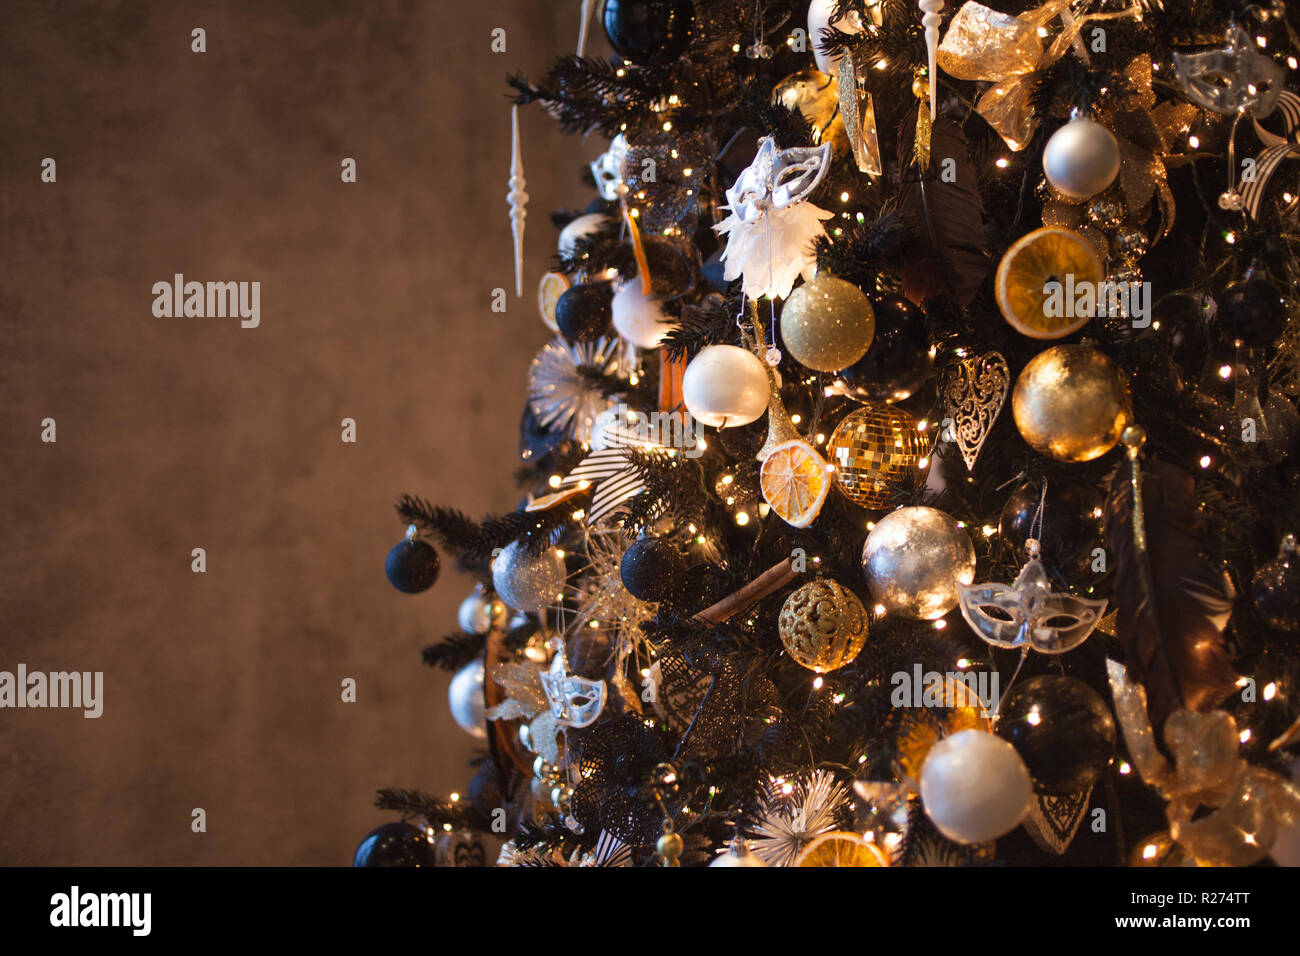 Christmas Background Stylish Christmas Tree The Black And Gold